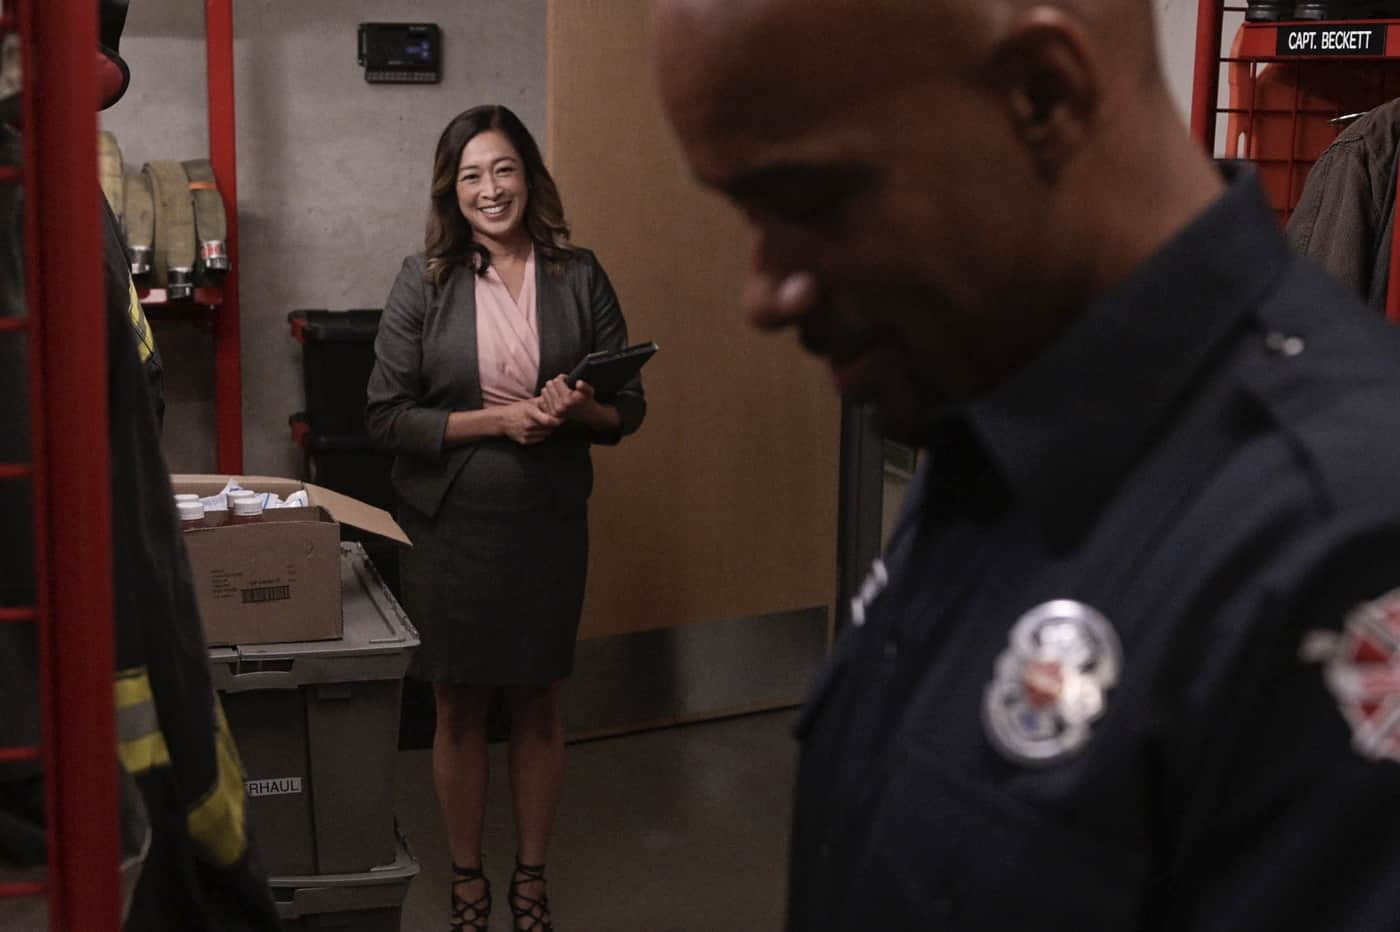 """STATION 19 Season 5 Episode 3 - """"Too Darn Hot"""" – When a heat wave hits Seattle, Station 19 becomes a cooling center and chaos ensues with locals who aren't used to the extreme temperatures. Andy deals with regret and finds a friend in Theo. Joey comes face-to-face with his past during a ride-along with Ben and Jack on a new episode of """"Station 19,"""" THURSDAY, OCT. 14 (8:00-9:00 p.m. EDT), on ABC. (ABC) CAMILLE CHEN"""